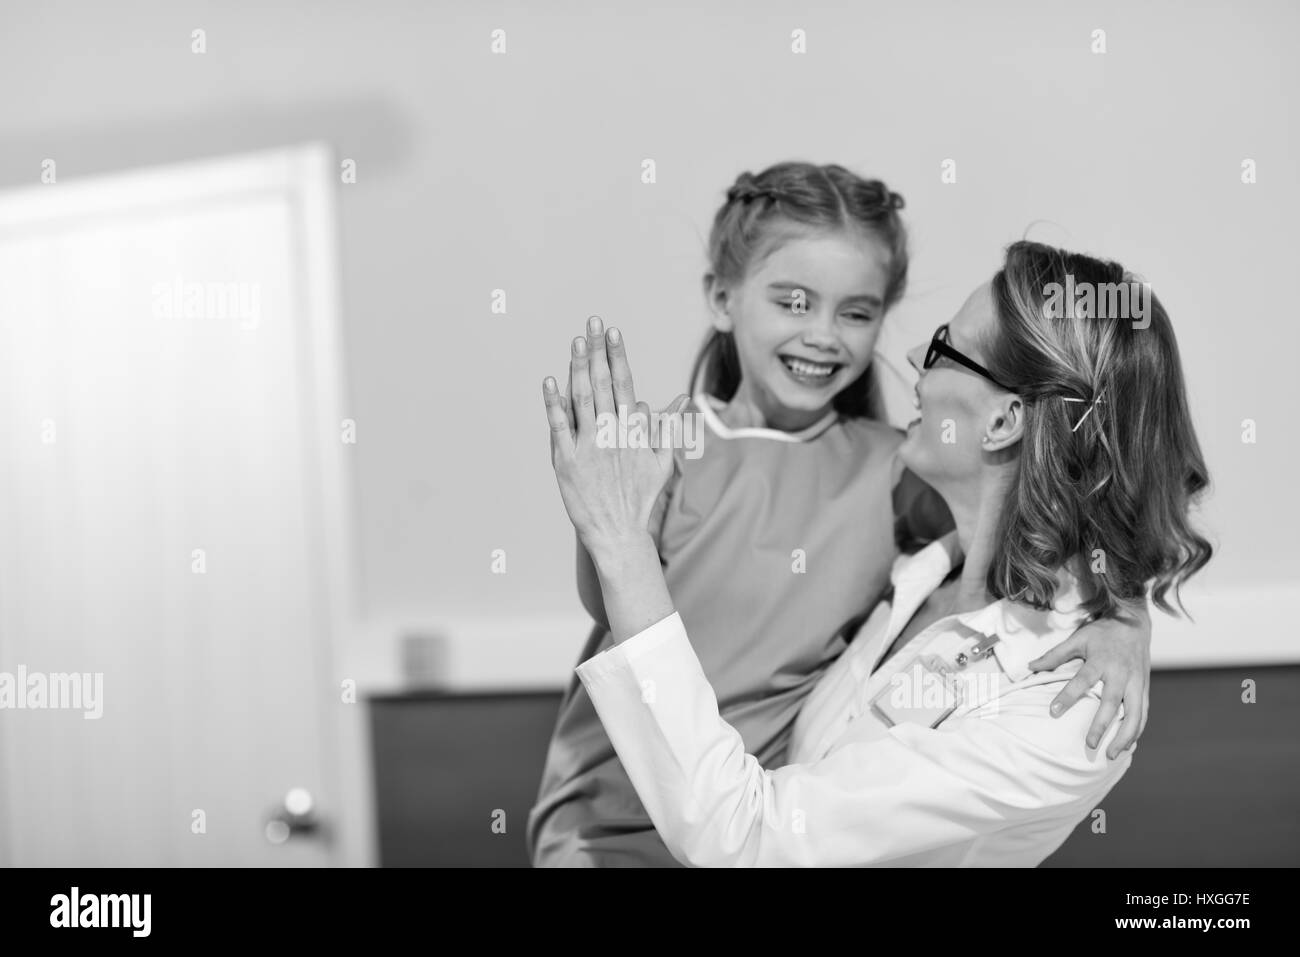 Smiling doctor and happy little girl patient looking at each other, black and white photo - Stock Image